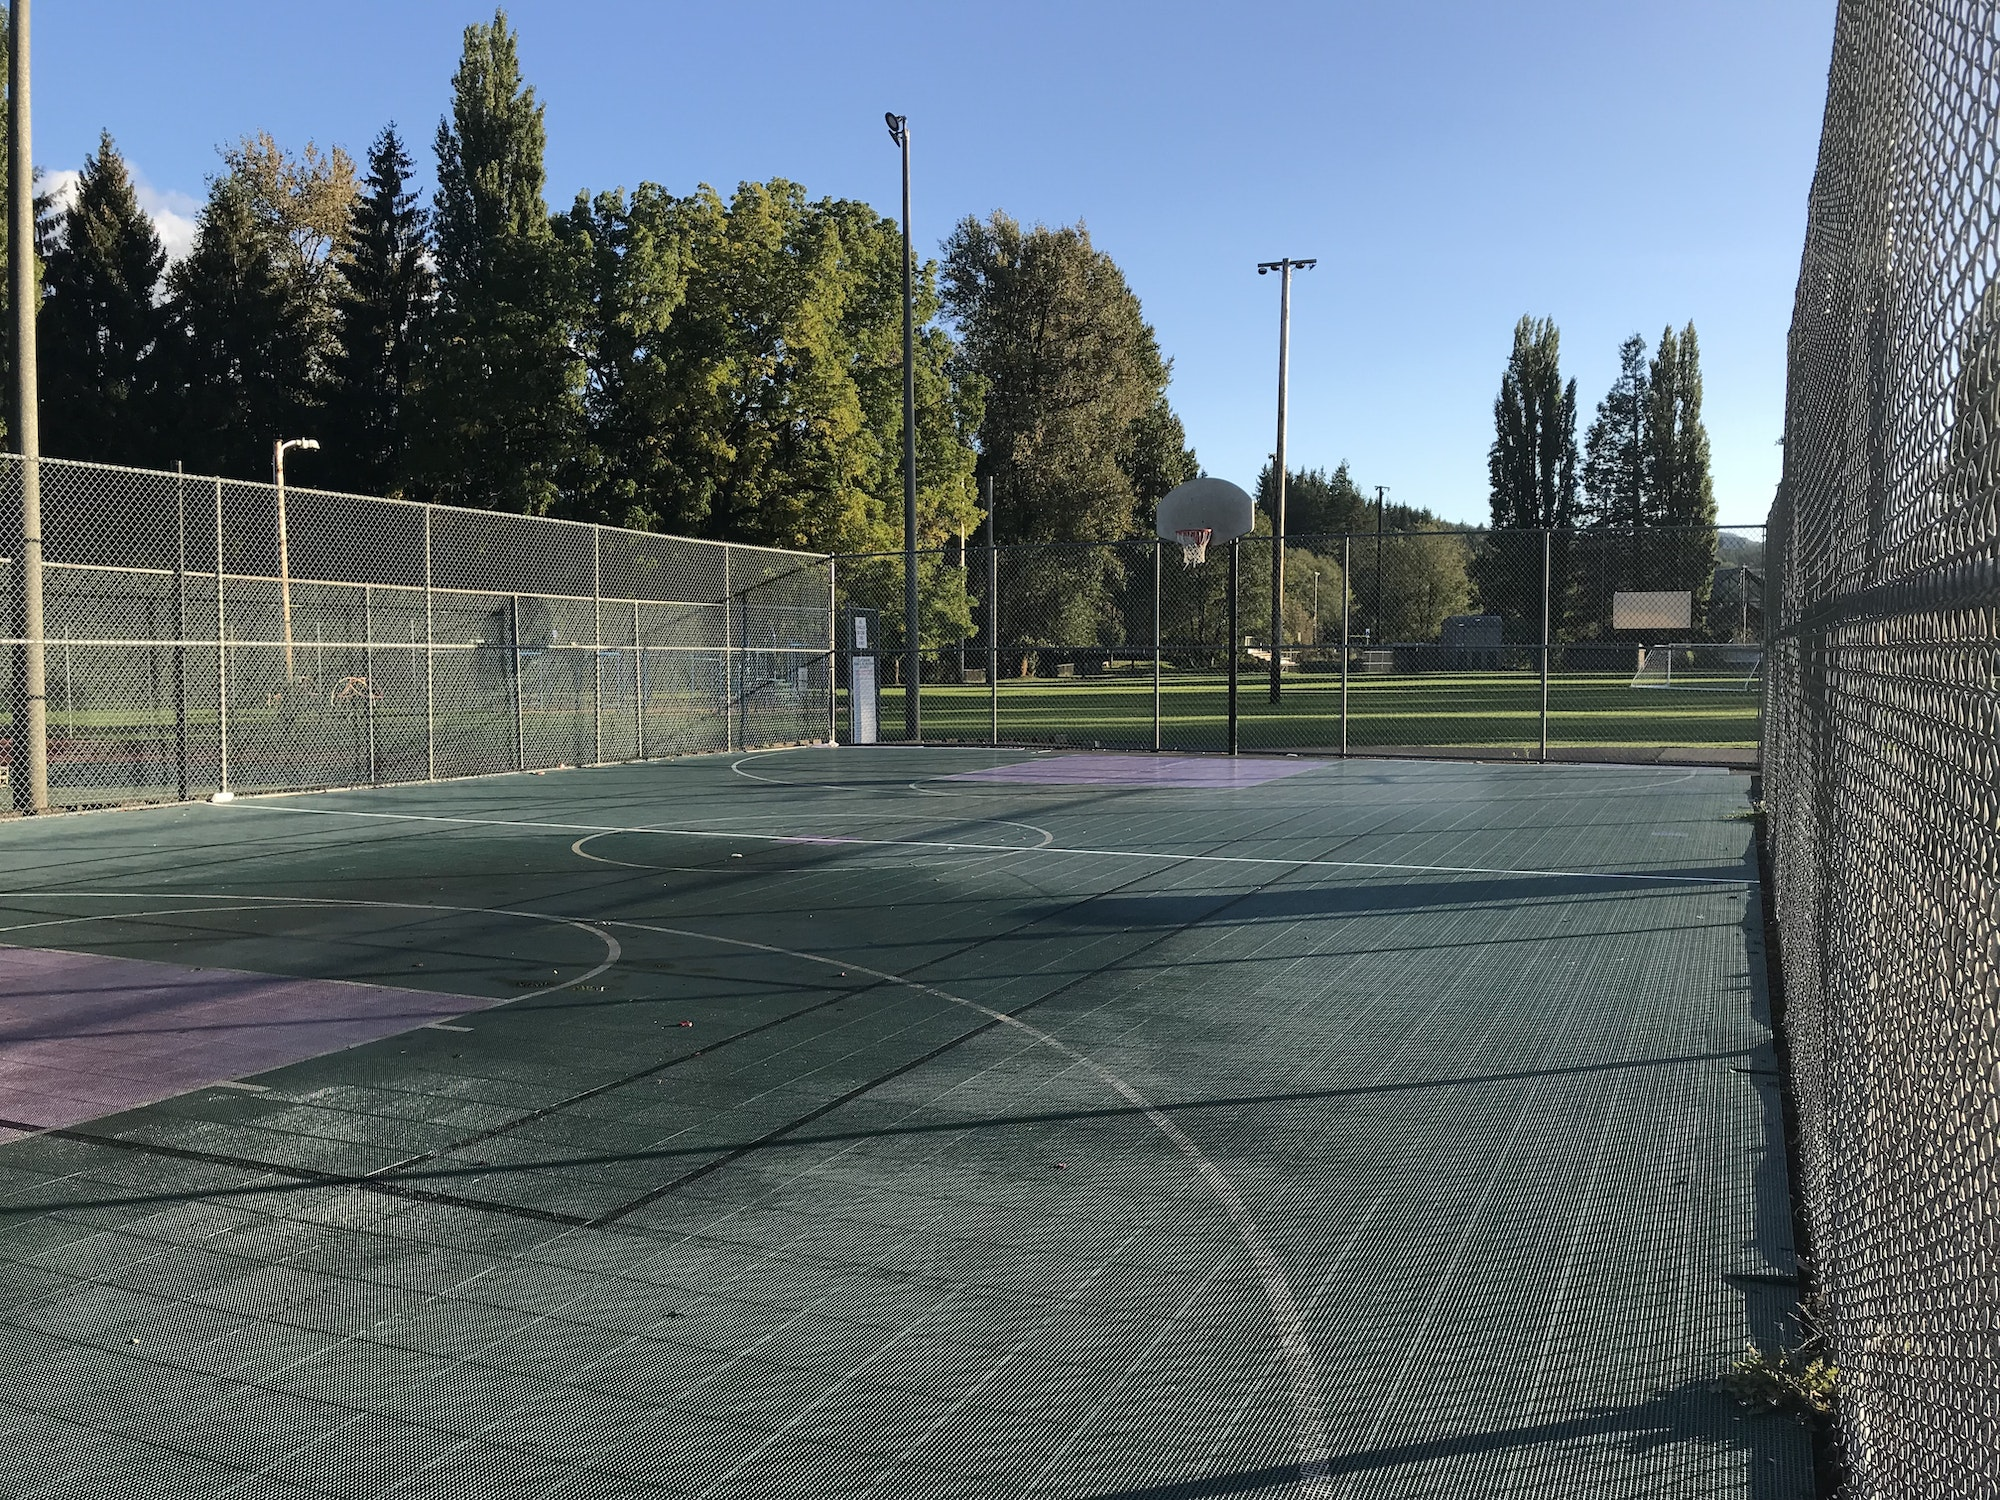 May contain: basketball court, basketball, team sport, sport, team, and sports